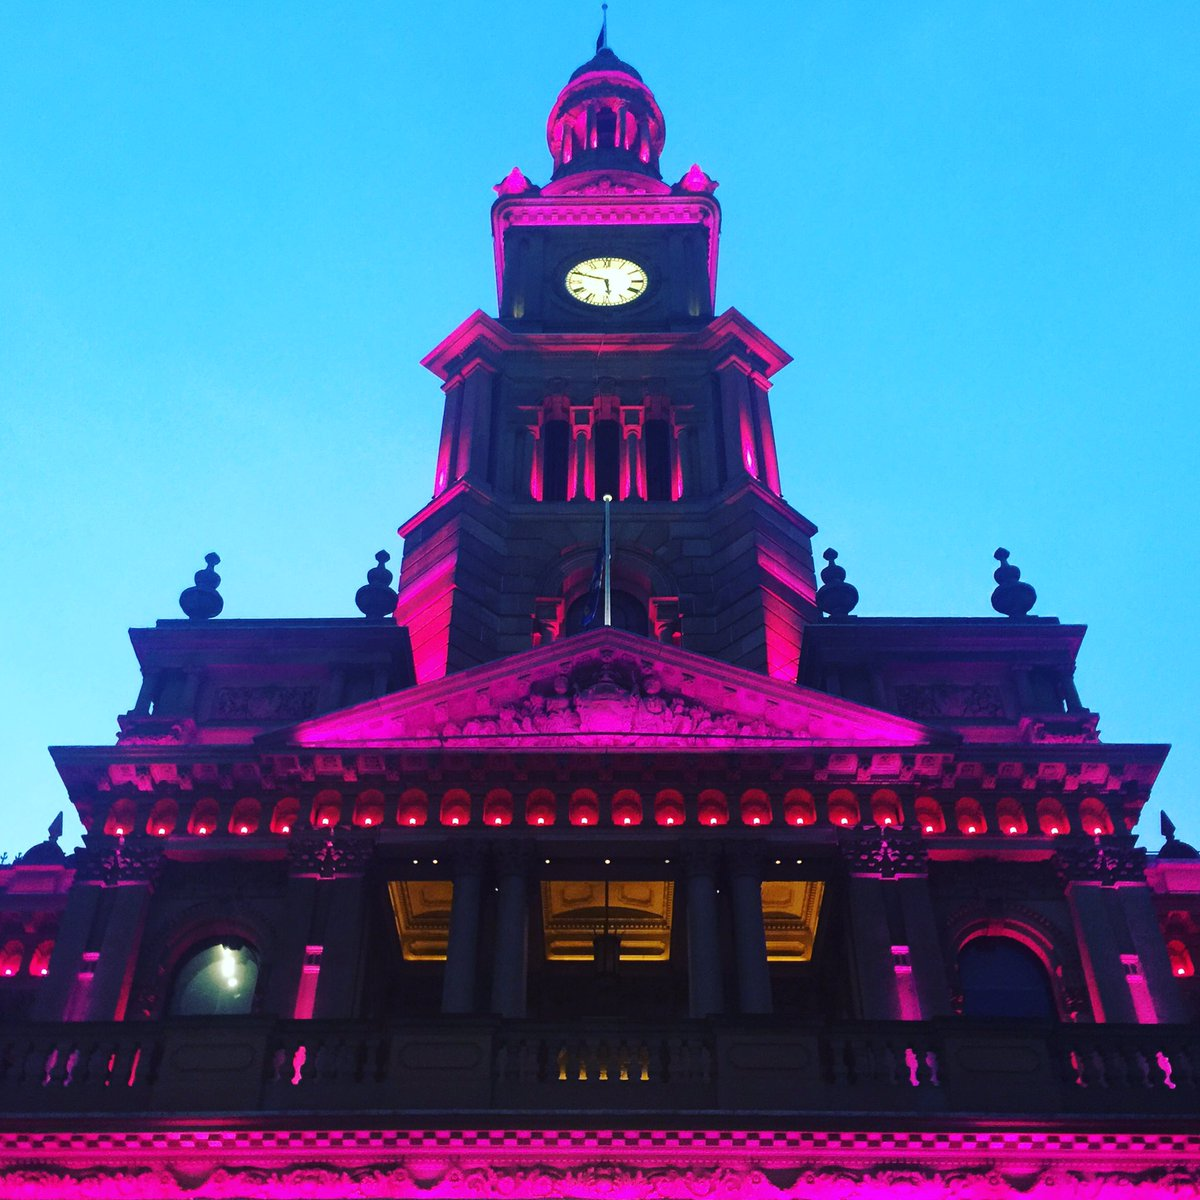 Thanks @cityofsydney for turning Town Hall pink to mark 2 days to the start of #SydneyFringe!